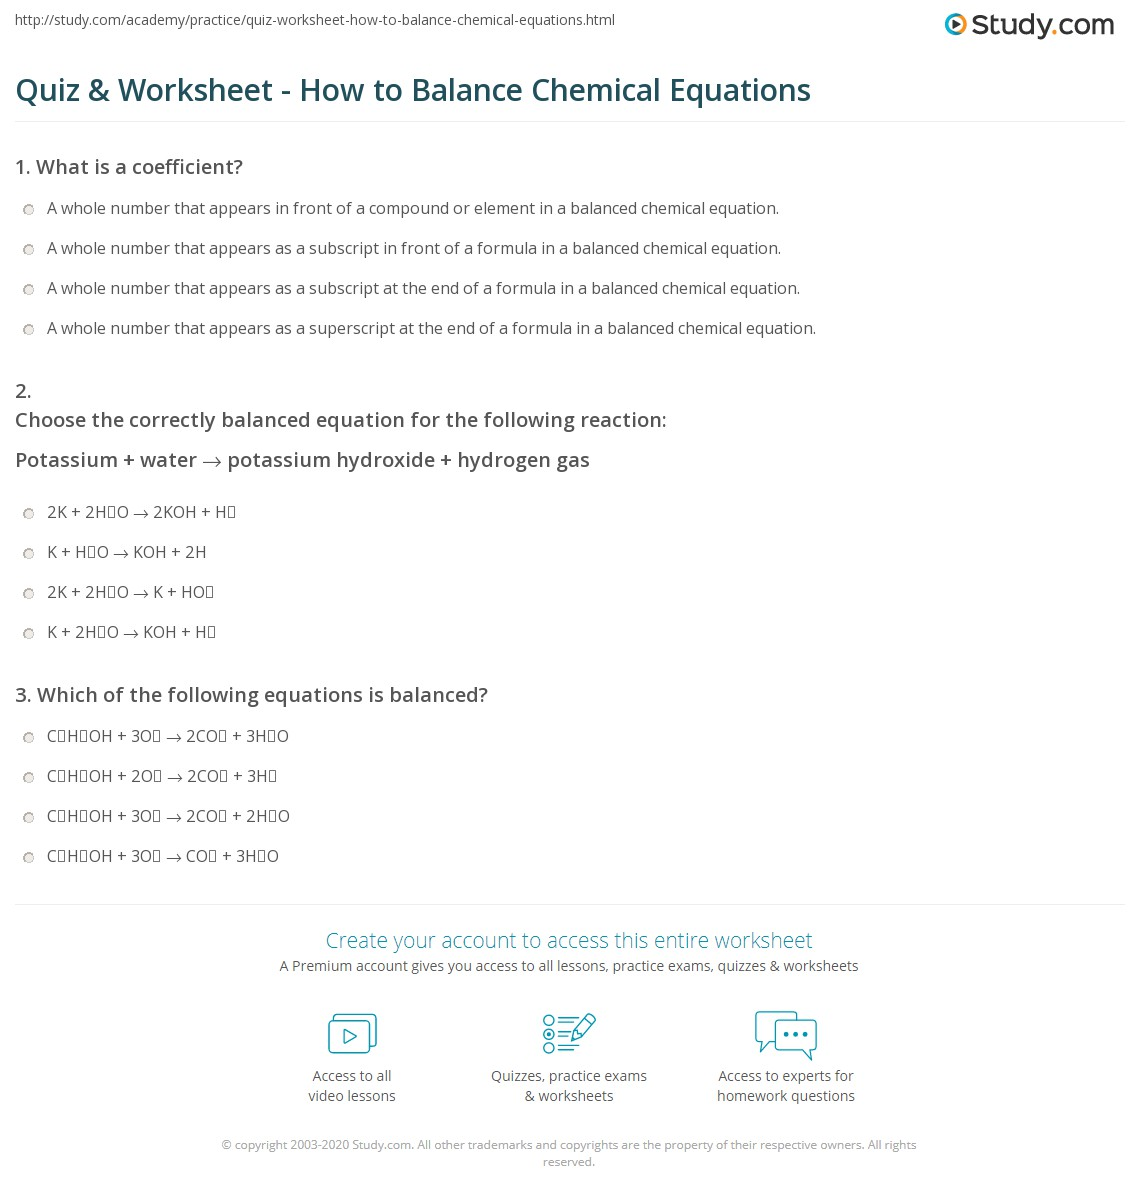 Quiz Worksheet How to Balance Chemical Equations – Balancing Equations Worksheet 1